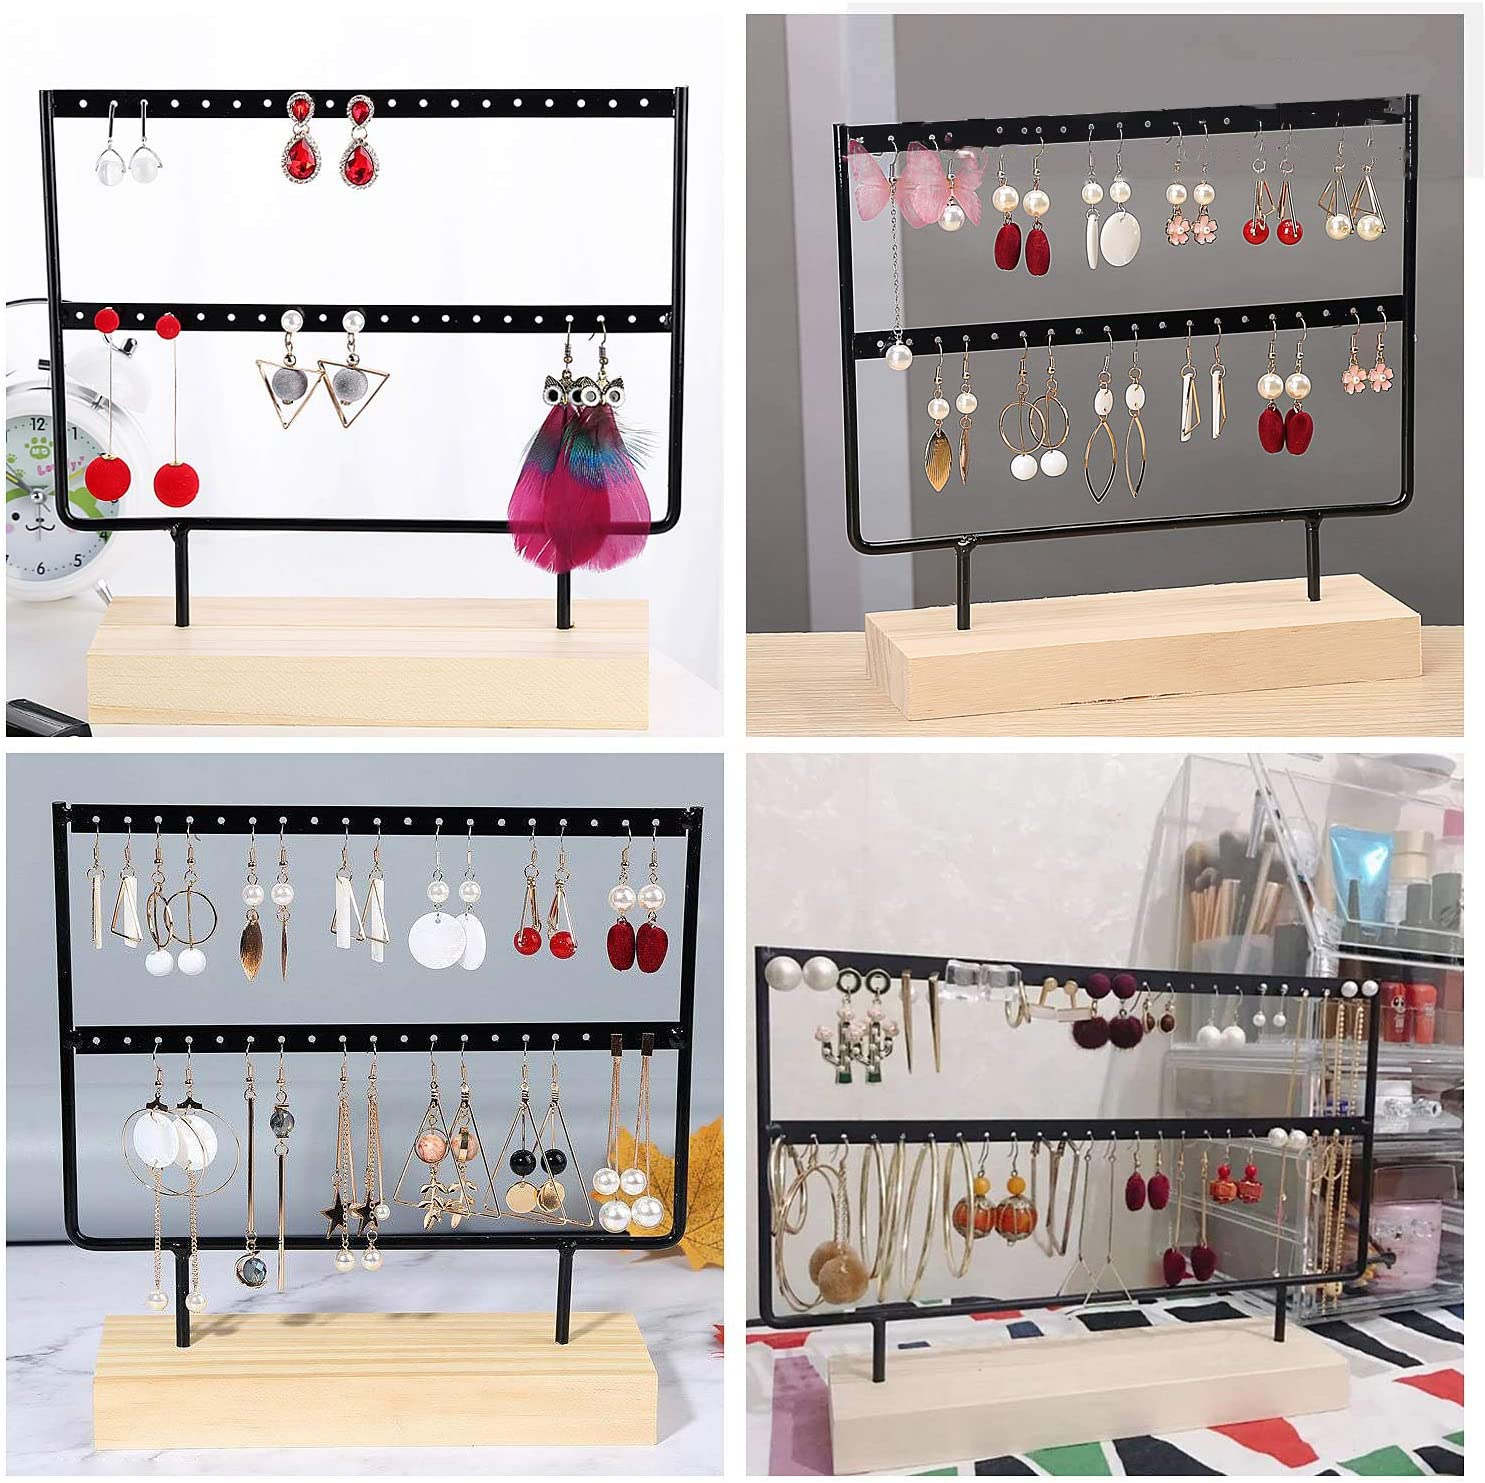 Mocolo Earring Organizer Stand 44 Holes /& 2 Layers Earring Holder for Hanging Earrings Earring Display Stand Silver